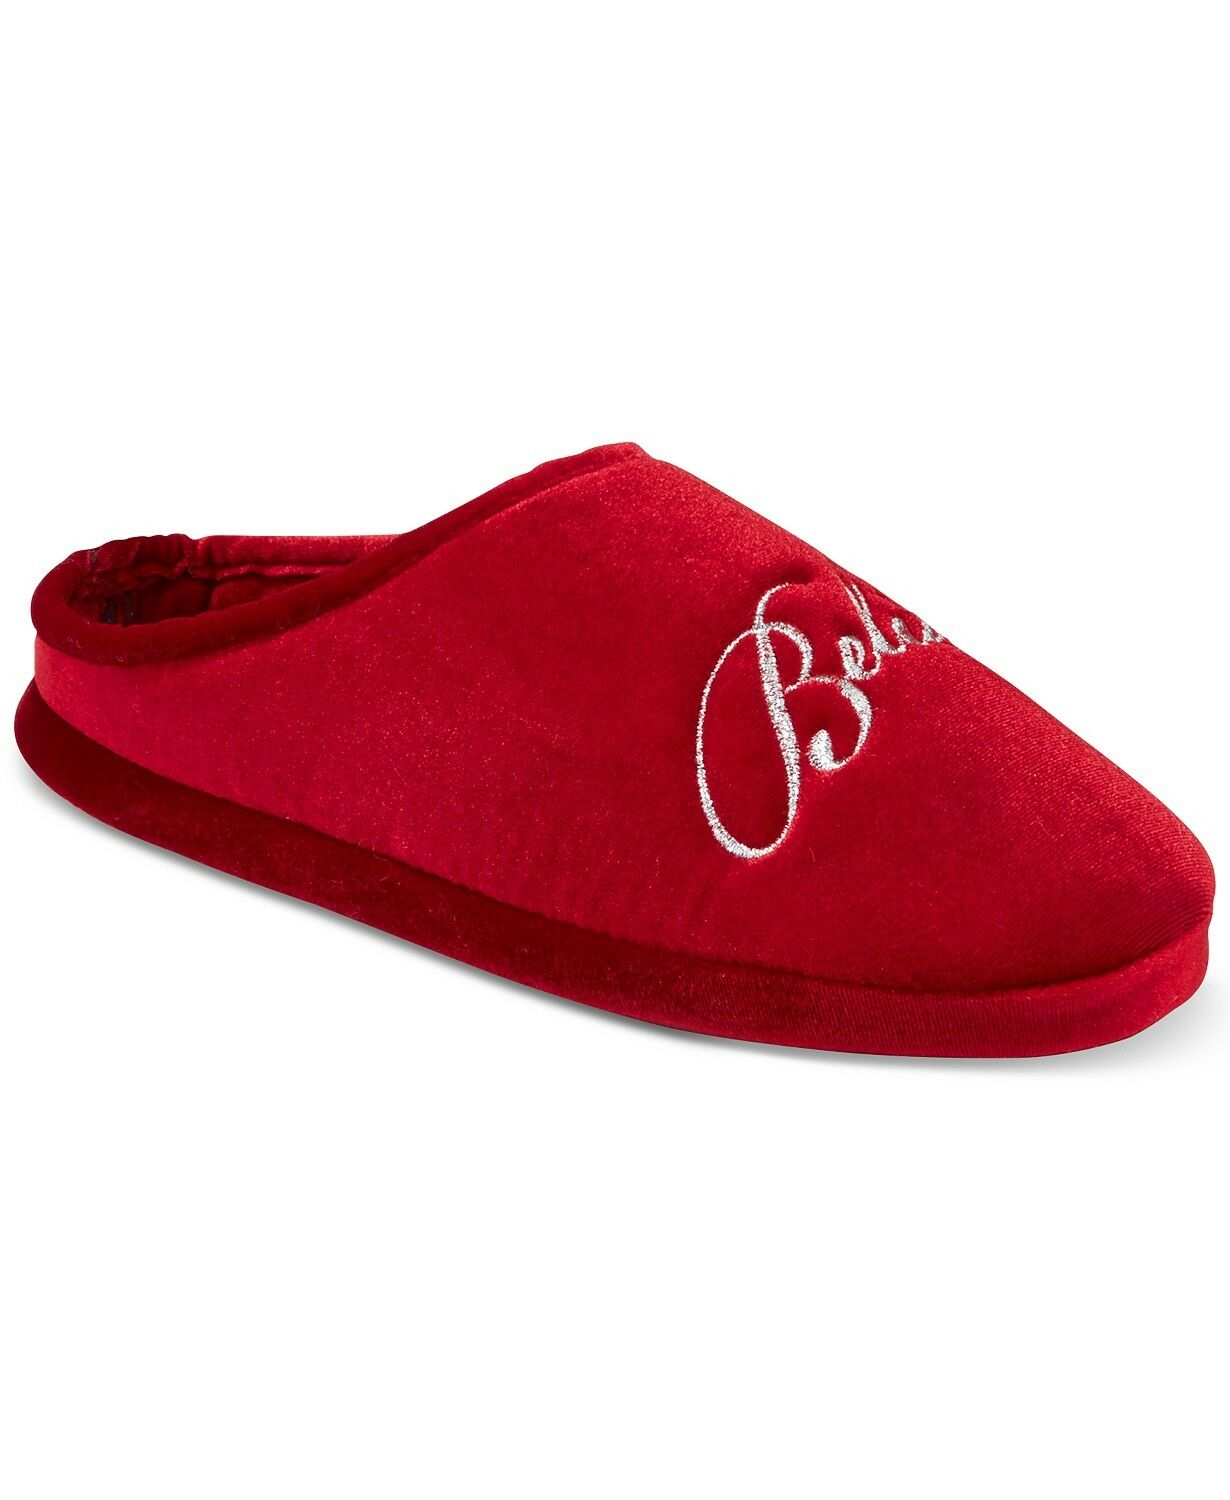 """NWT Charter Club Red """"BELIEVE"""" Clog Slippers Slip-On Shoes Indoor Outdoor XL"""